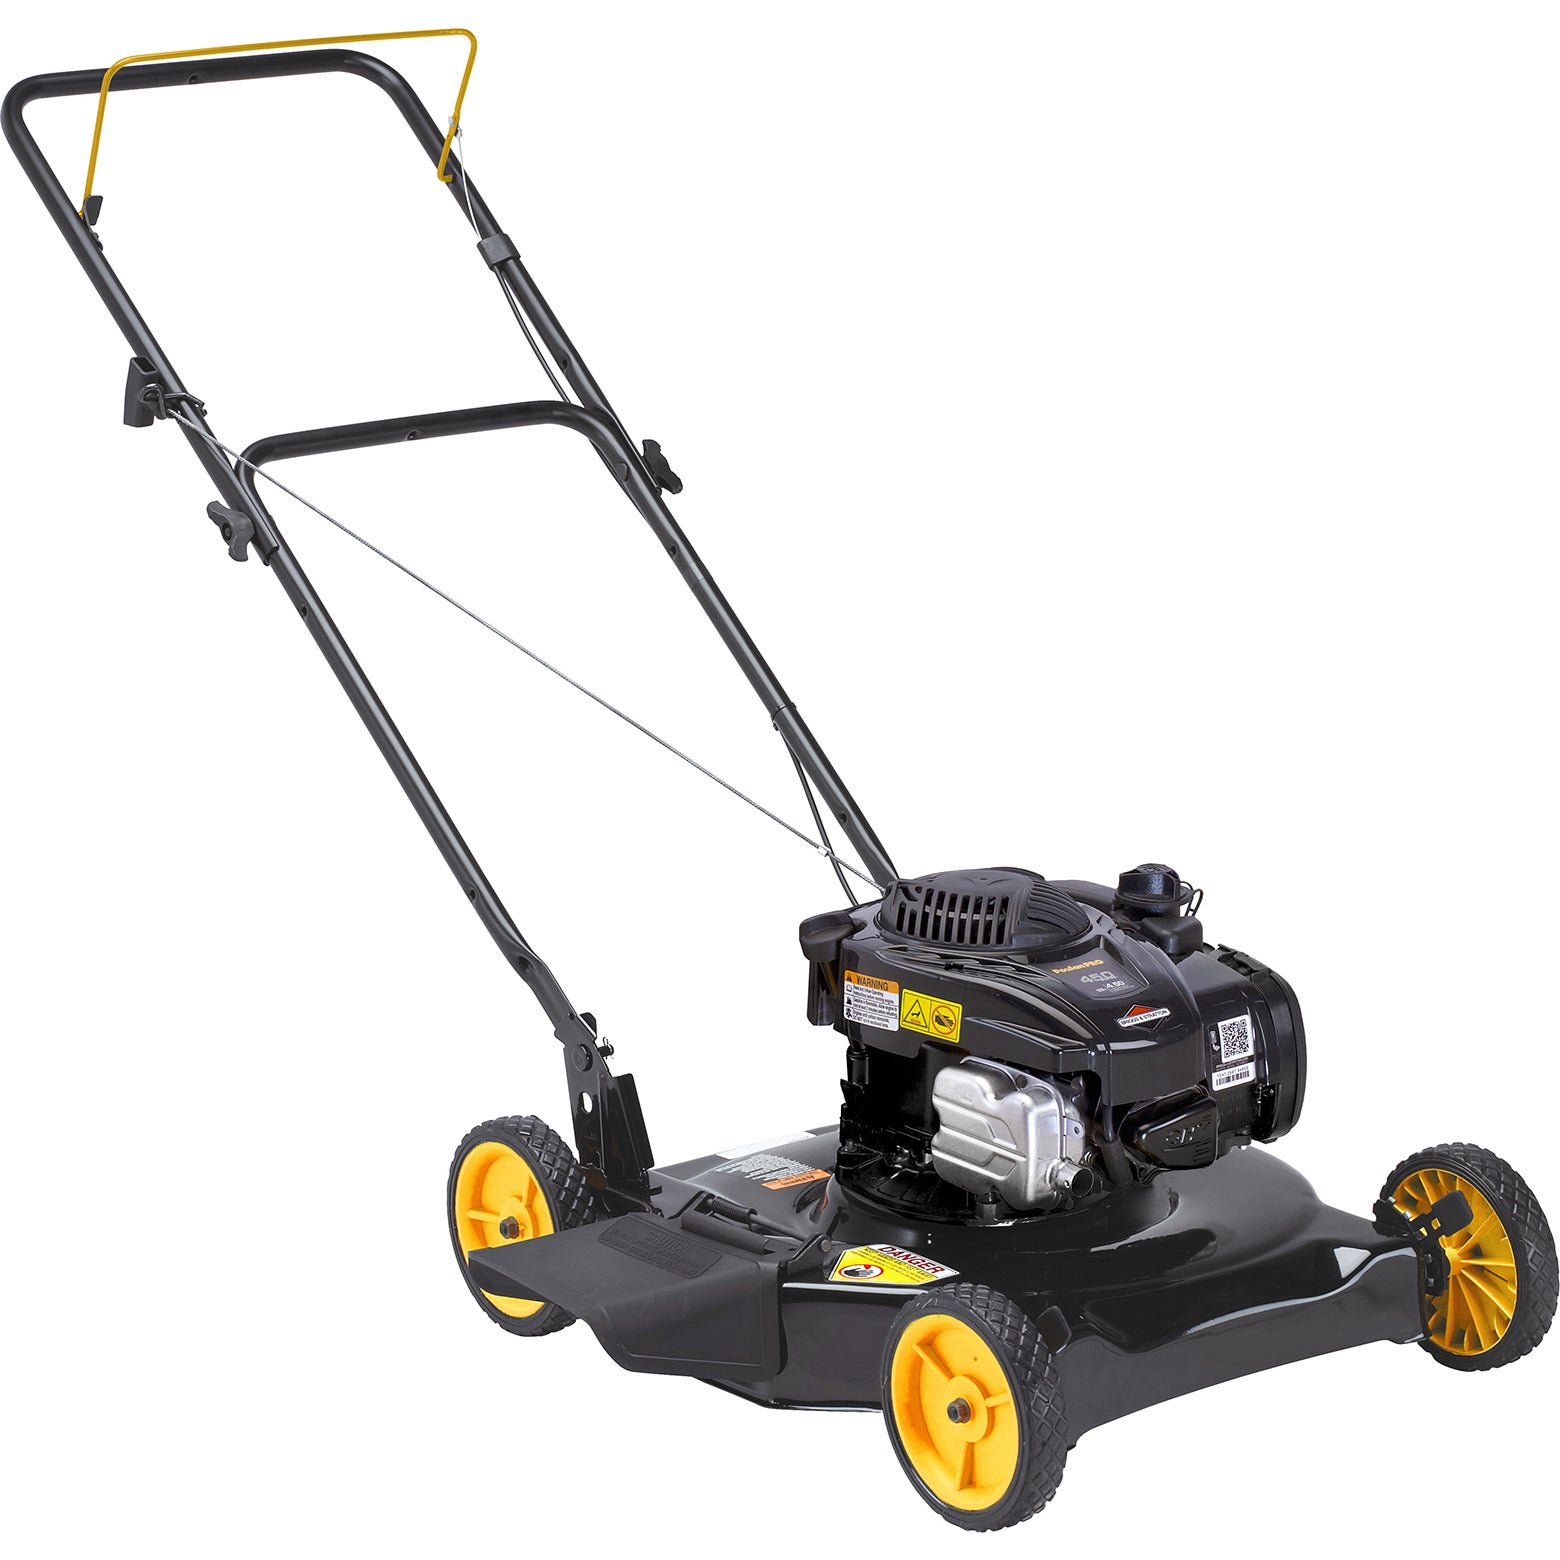 Weed Eater Poulan Pro 961120130 20 Inches Push Lawn Mower...